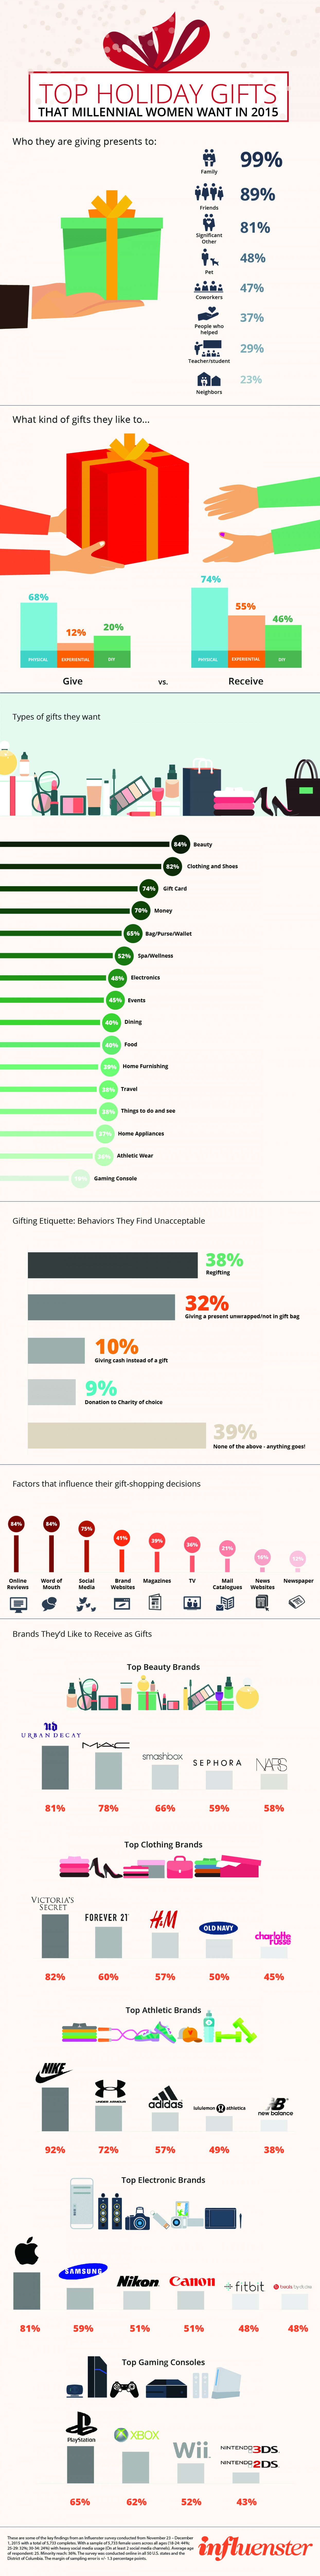 Top Holiday Gifts that Millennial Women Want in 2015 Infographic